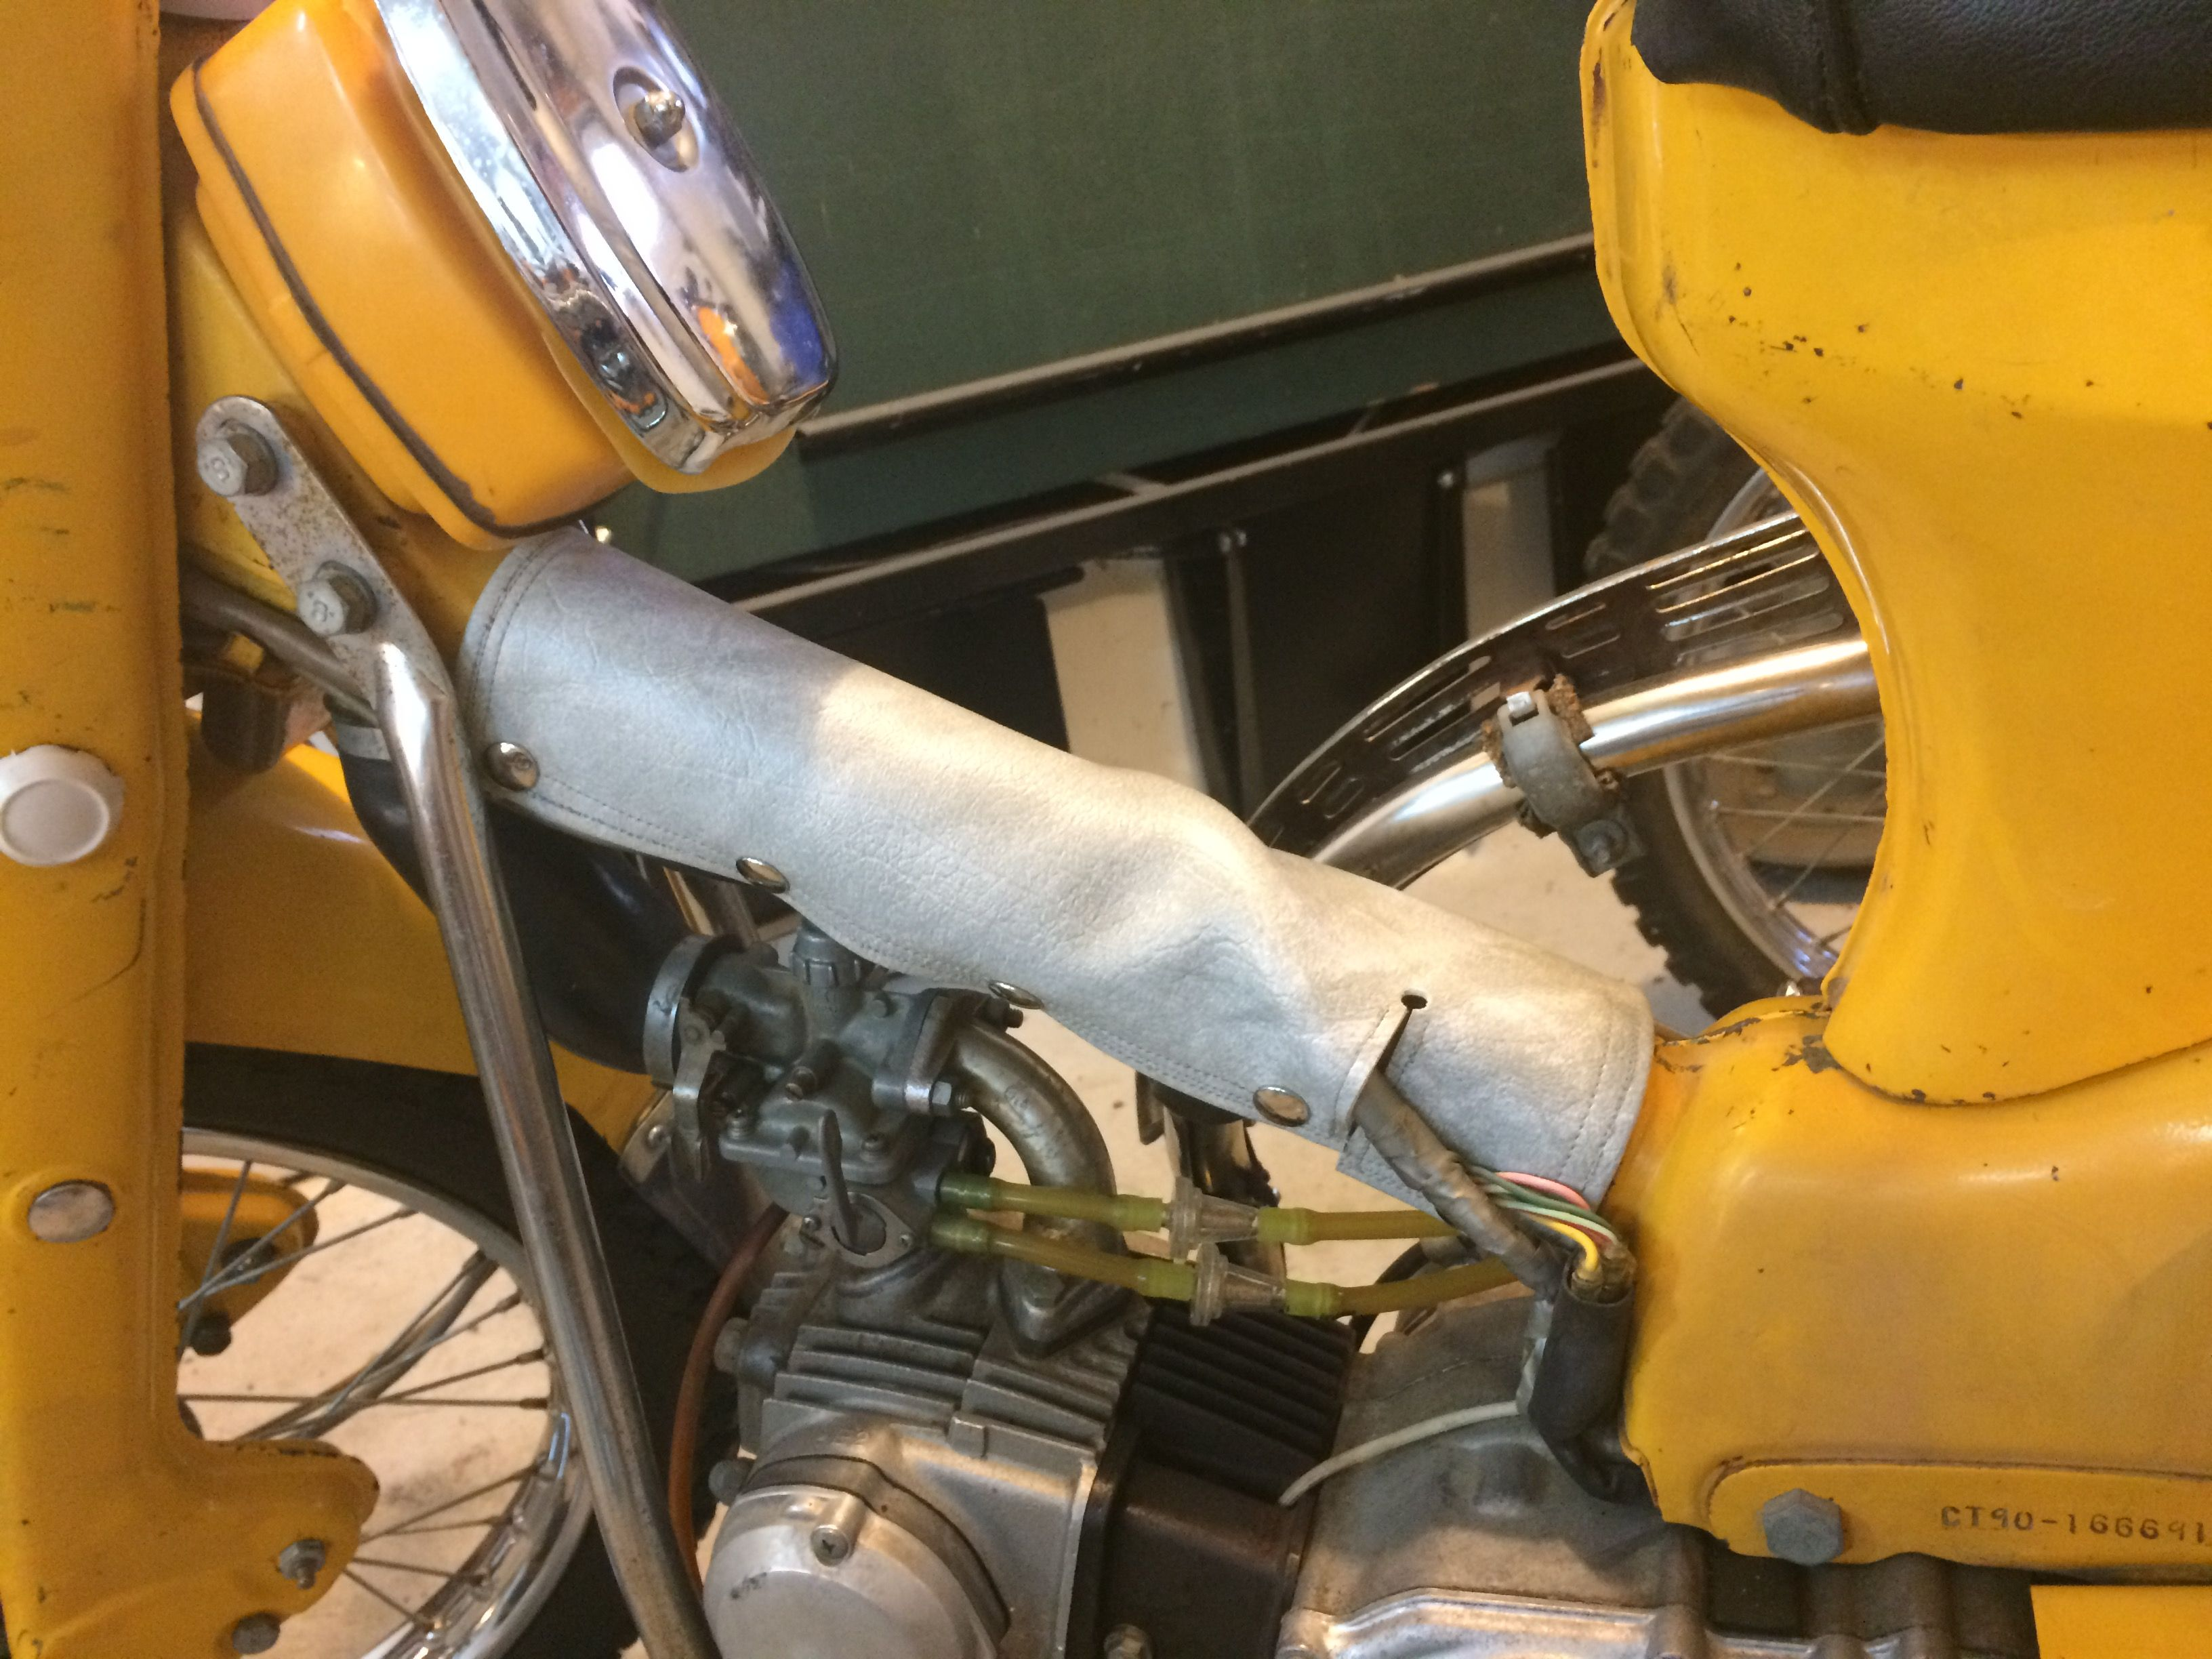 Honda Ct200 Points And Condenser Ct90 Ct110 Hondatrail 1974 K4 Wiring Diagram Make Your Own Vinyl Down Tube Cover Is Really Pretty Straight Forward I Have Provided Instructions On How To One At My Blog